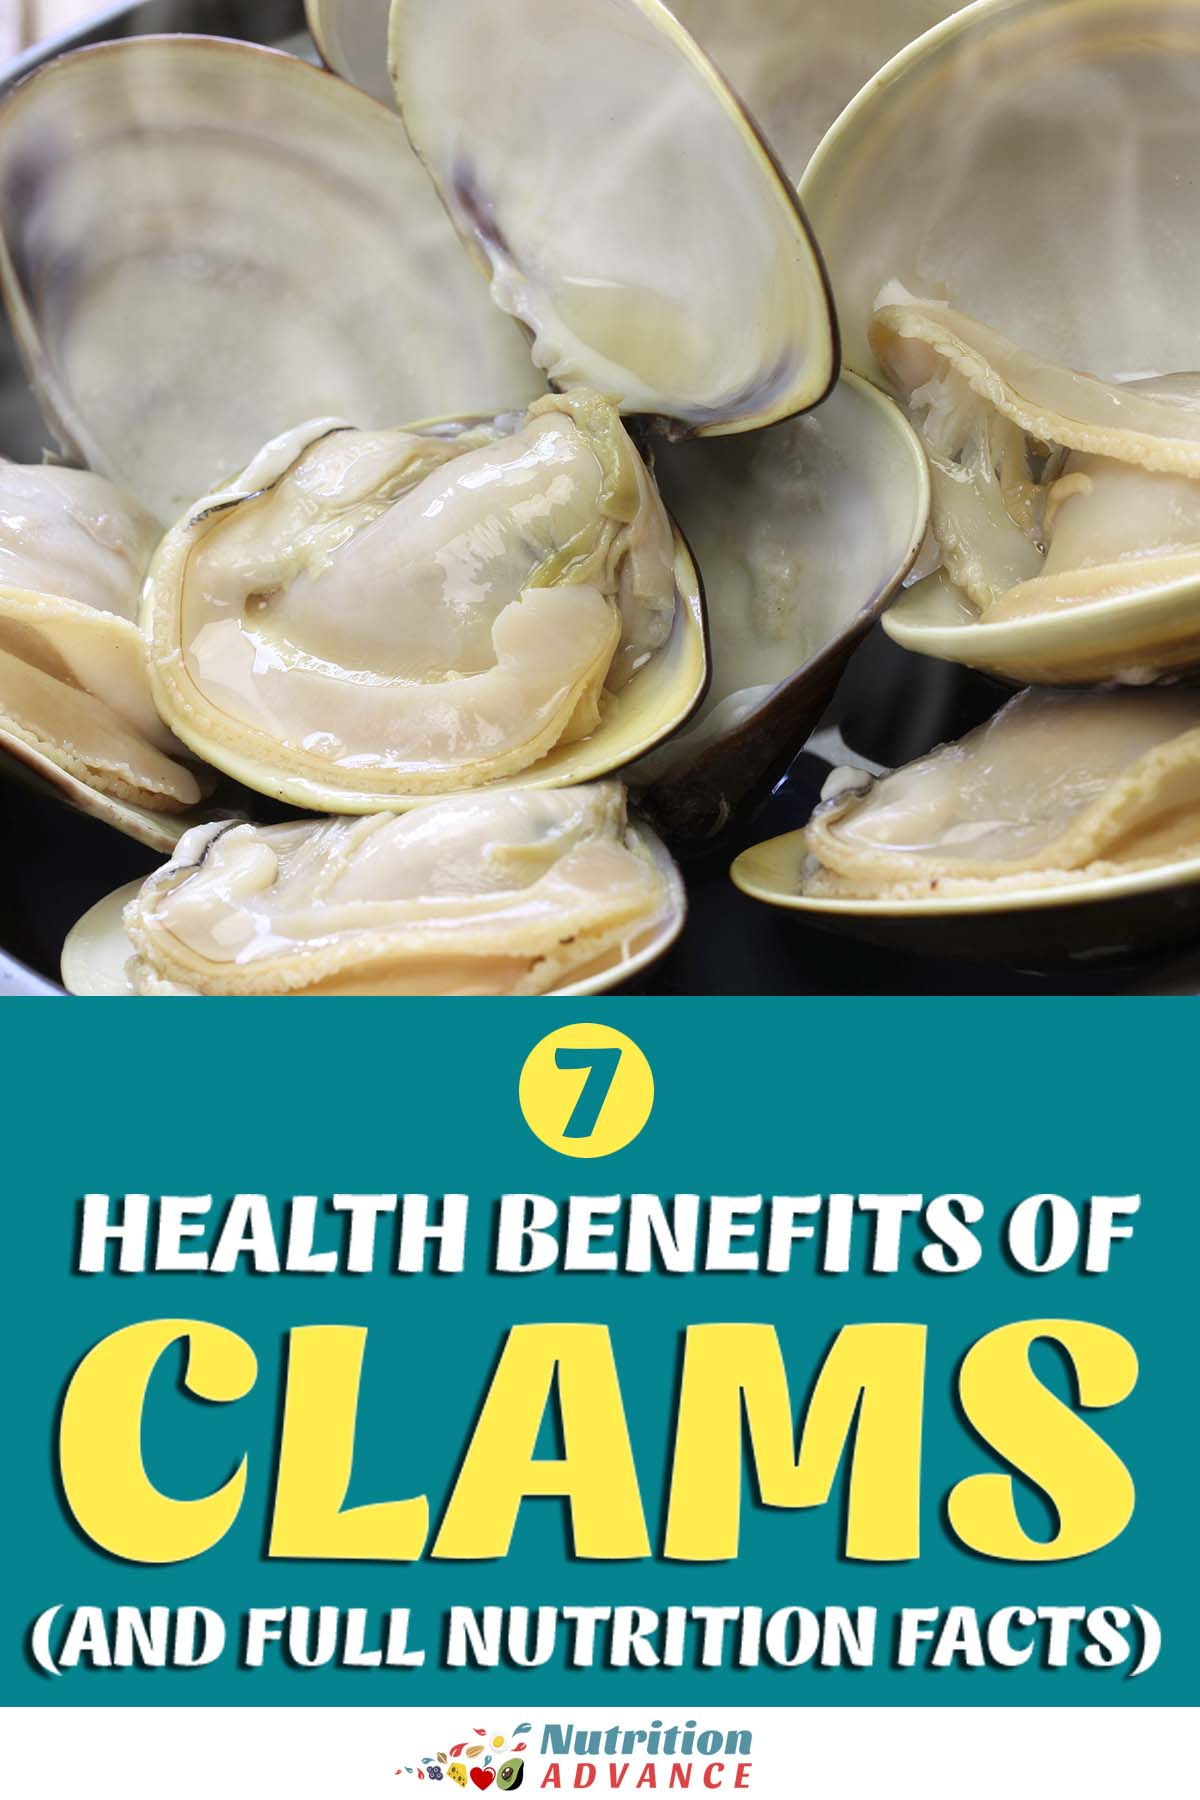 7 Benefits of Clams (and Full Nutrition